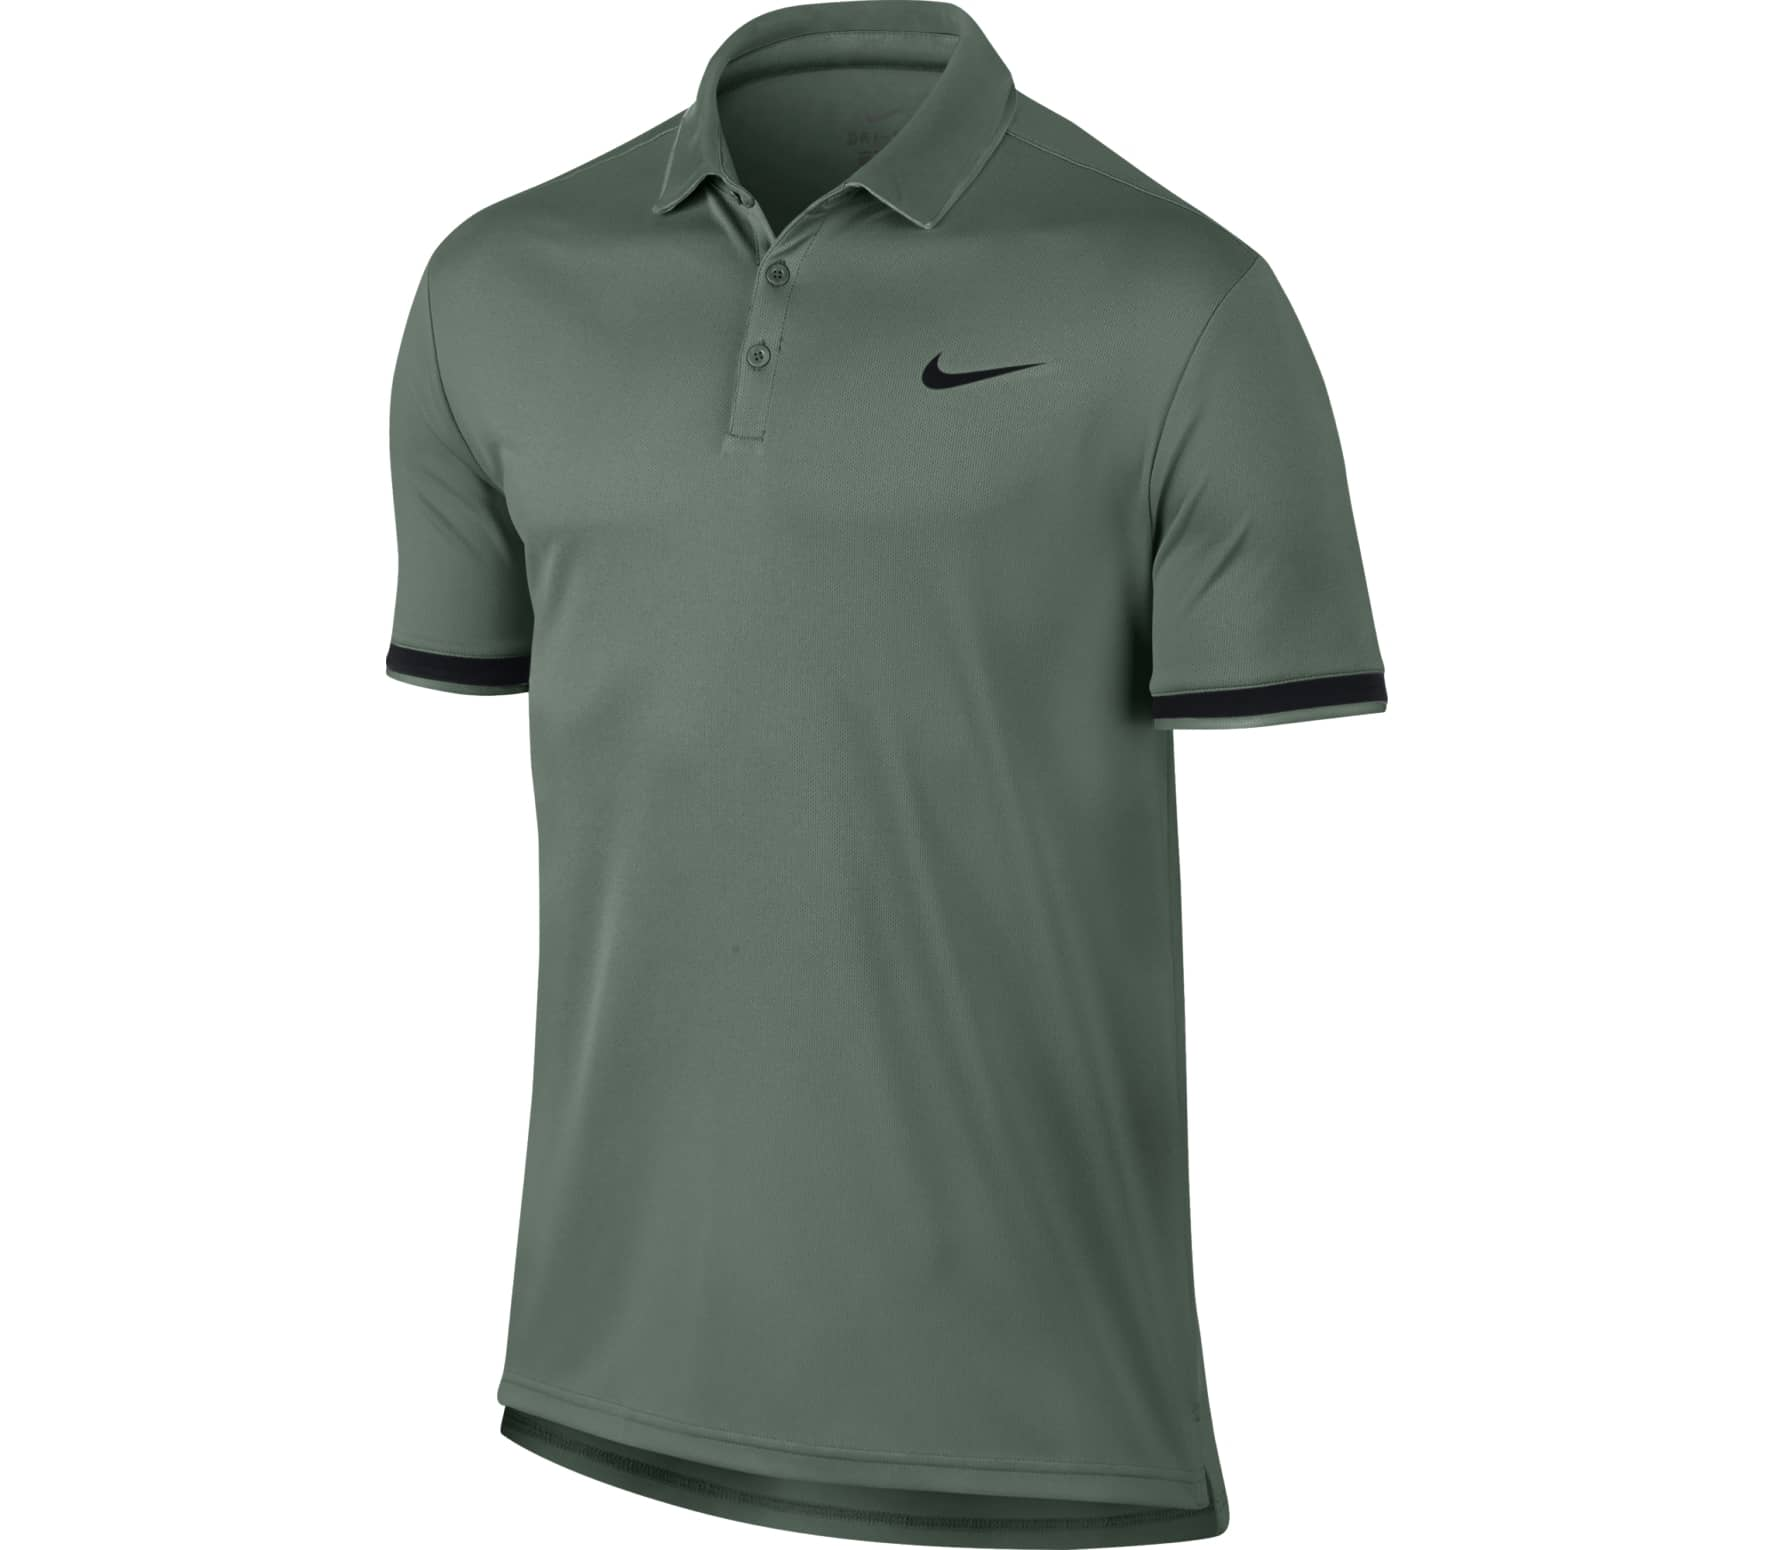 bf50b478 Nike - Court Dry men's tennis polo top (dark green) - buy it at the ...